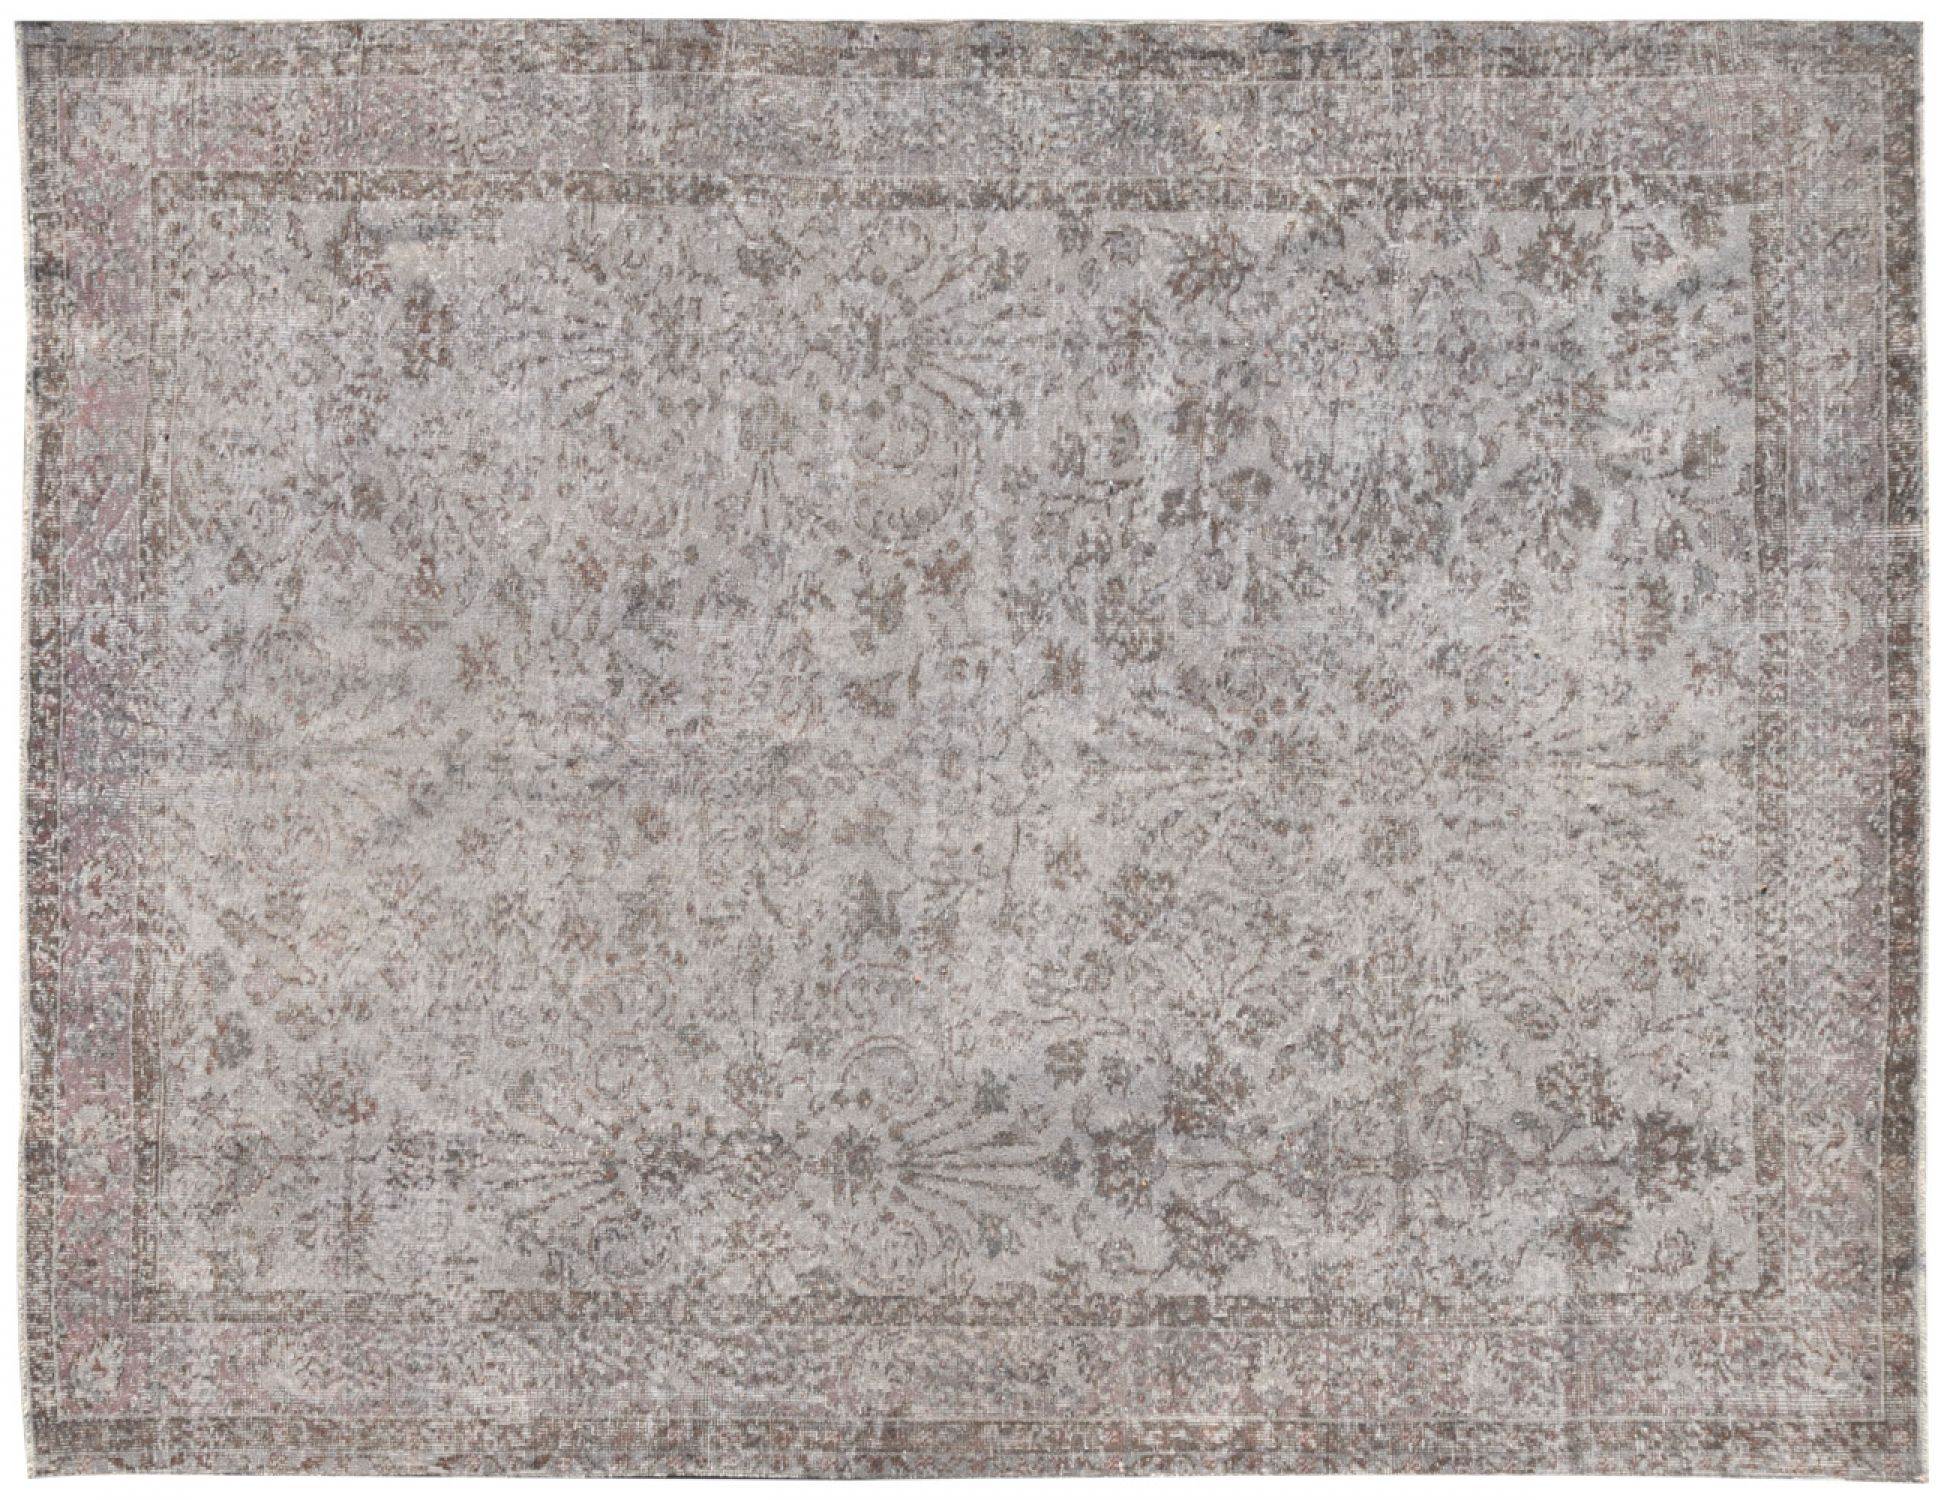 Vintage Carpet  grey <br/>286 x 194 cm